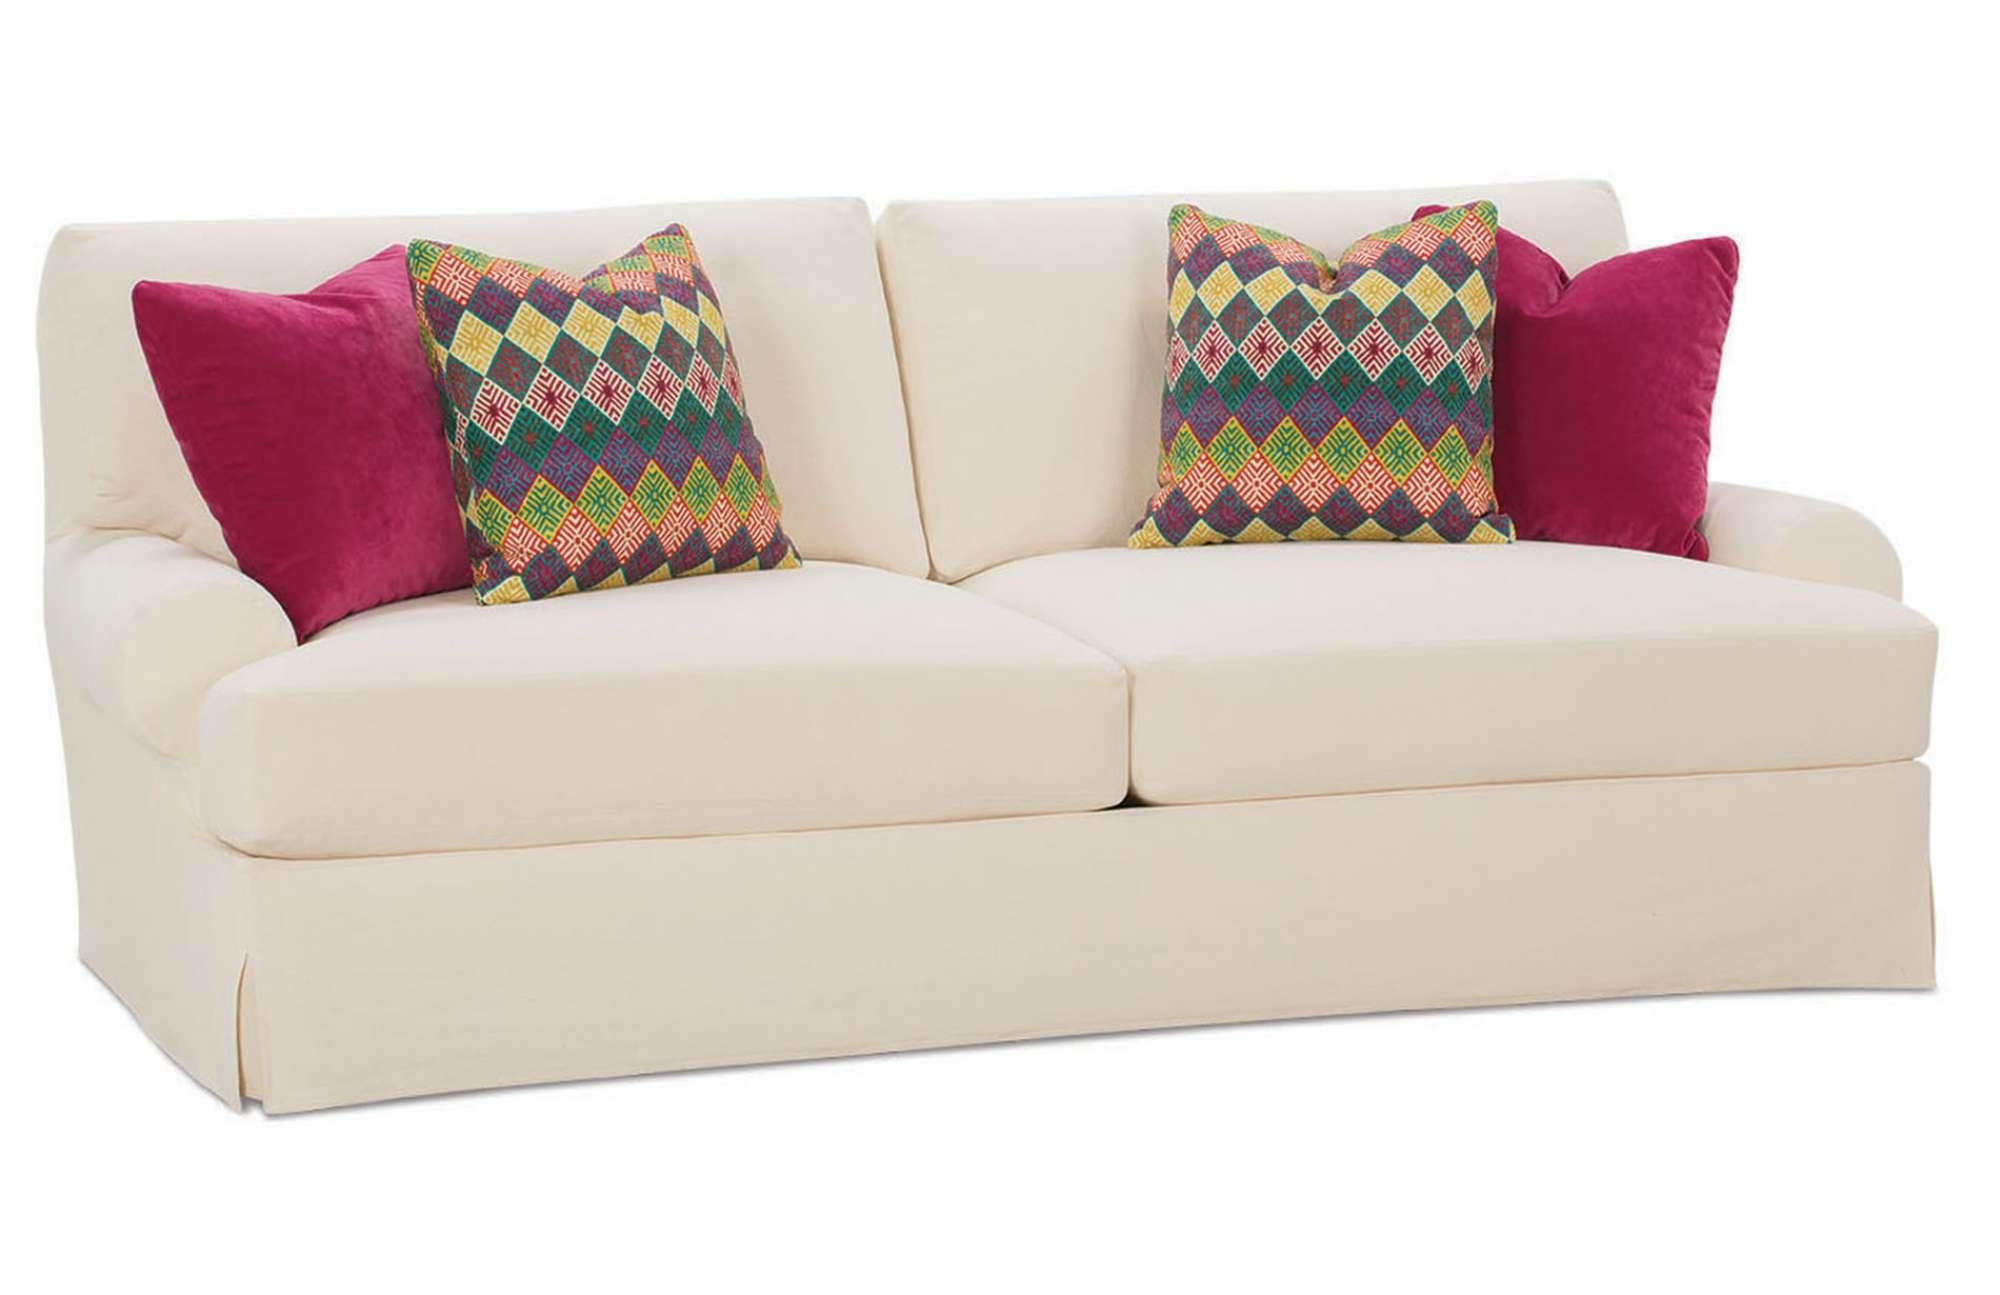 Furniture: Update Your Living Room With Best Sofa Slipcover Design Regarding Canvas Sofa Slipcovers (View 14 of 20)